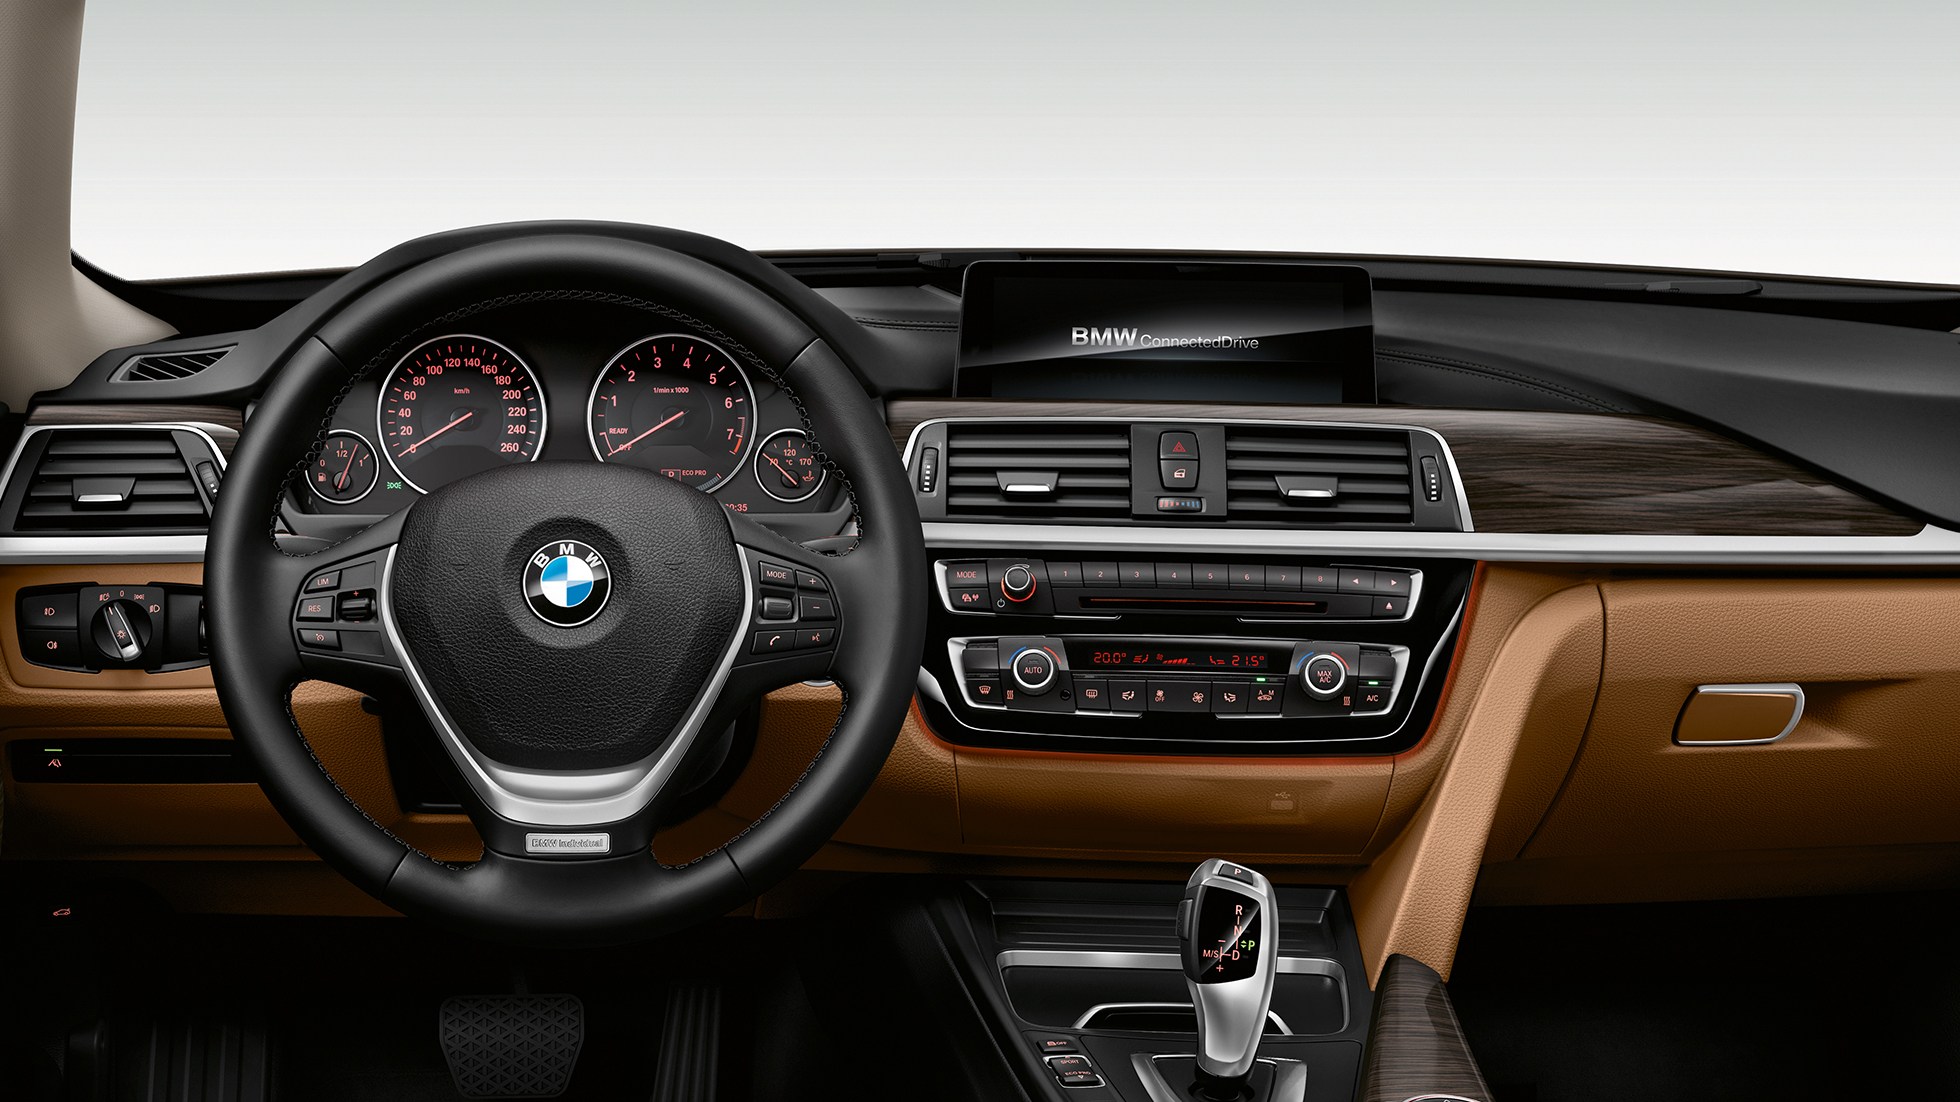 BMW 3 Series Gran Turismo, Model Luxury Line cockpit